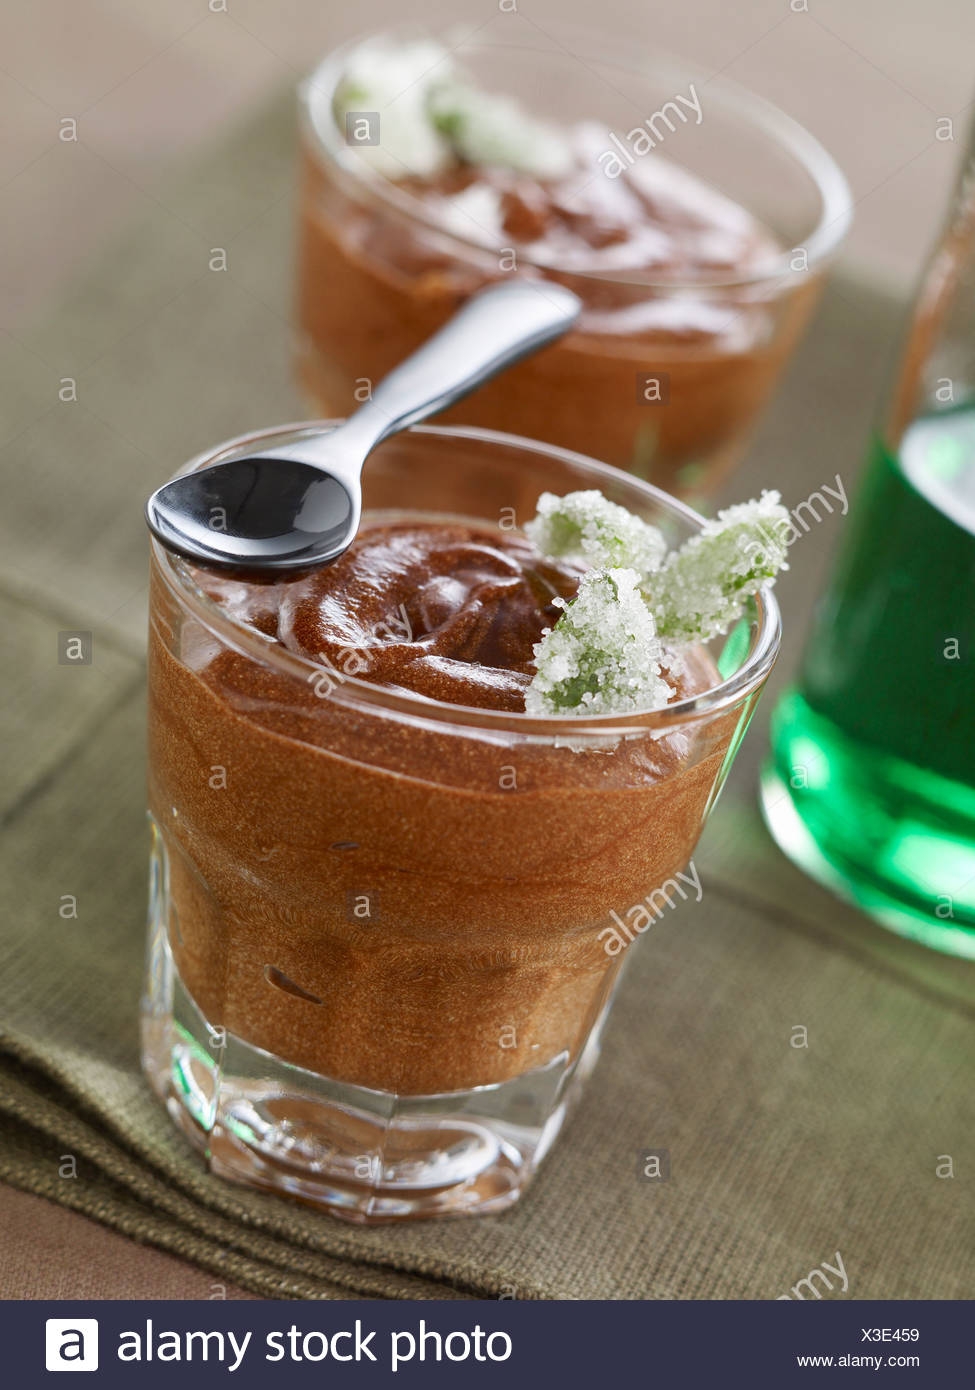 Chocolate and mint liqueur mousse - Stock Image